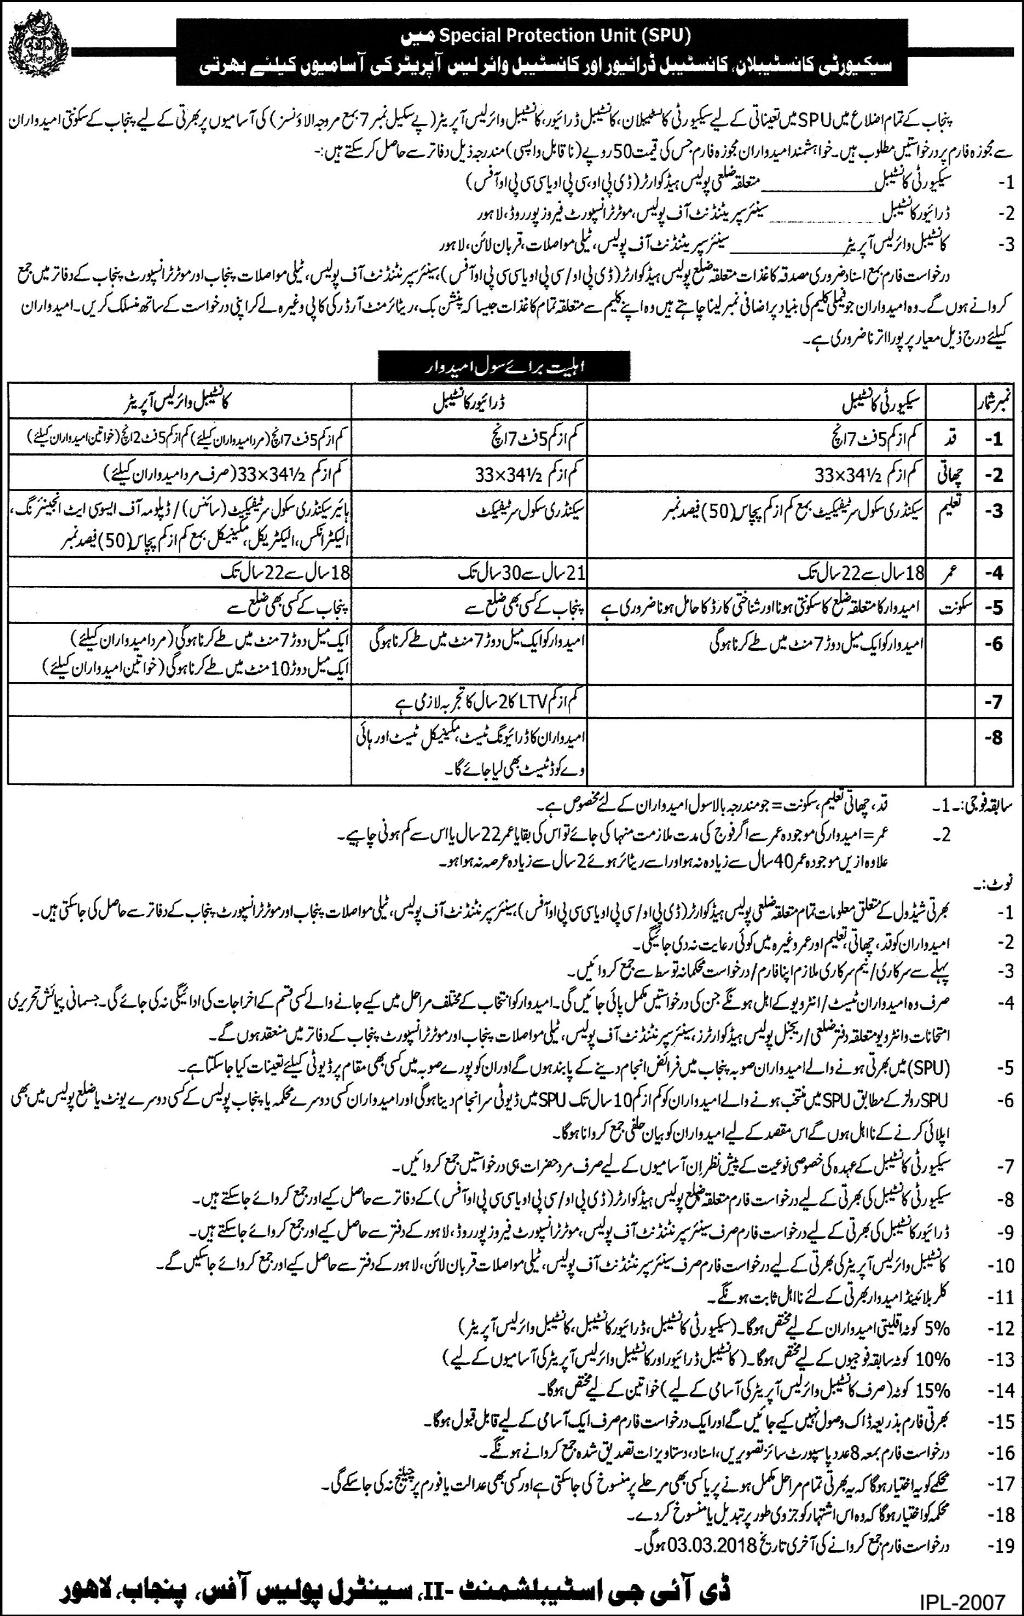 Punjab Police SPU Constable Jobs 2018 Application Form Specialized Protection Unit